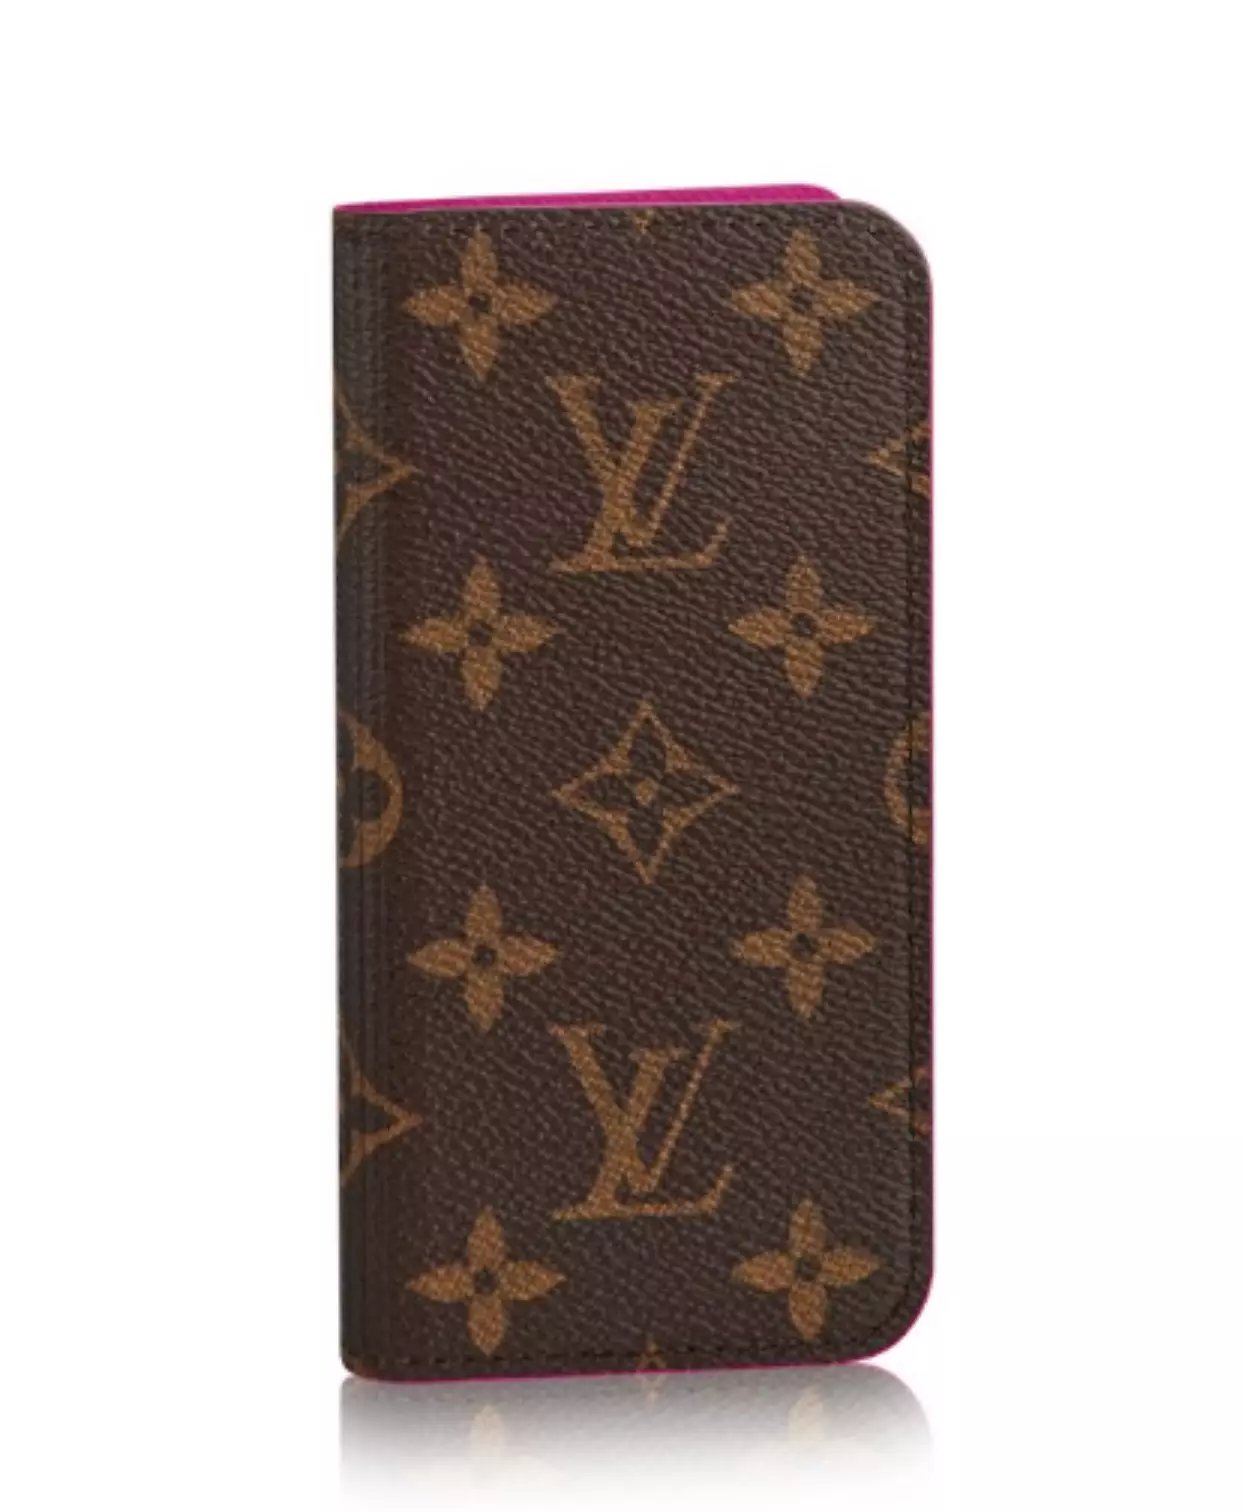 iphone hüllen iphone filzhülle Louis Vuitton iphone 8 Plus hüllen schutzhülle handy gute iphone 8 Plus hülle iphone 8 Plus hutzhülle wann kommt iphone 8 Plus raus grös8 Plusr als iphone 8 Plus was ist neu